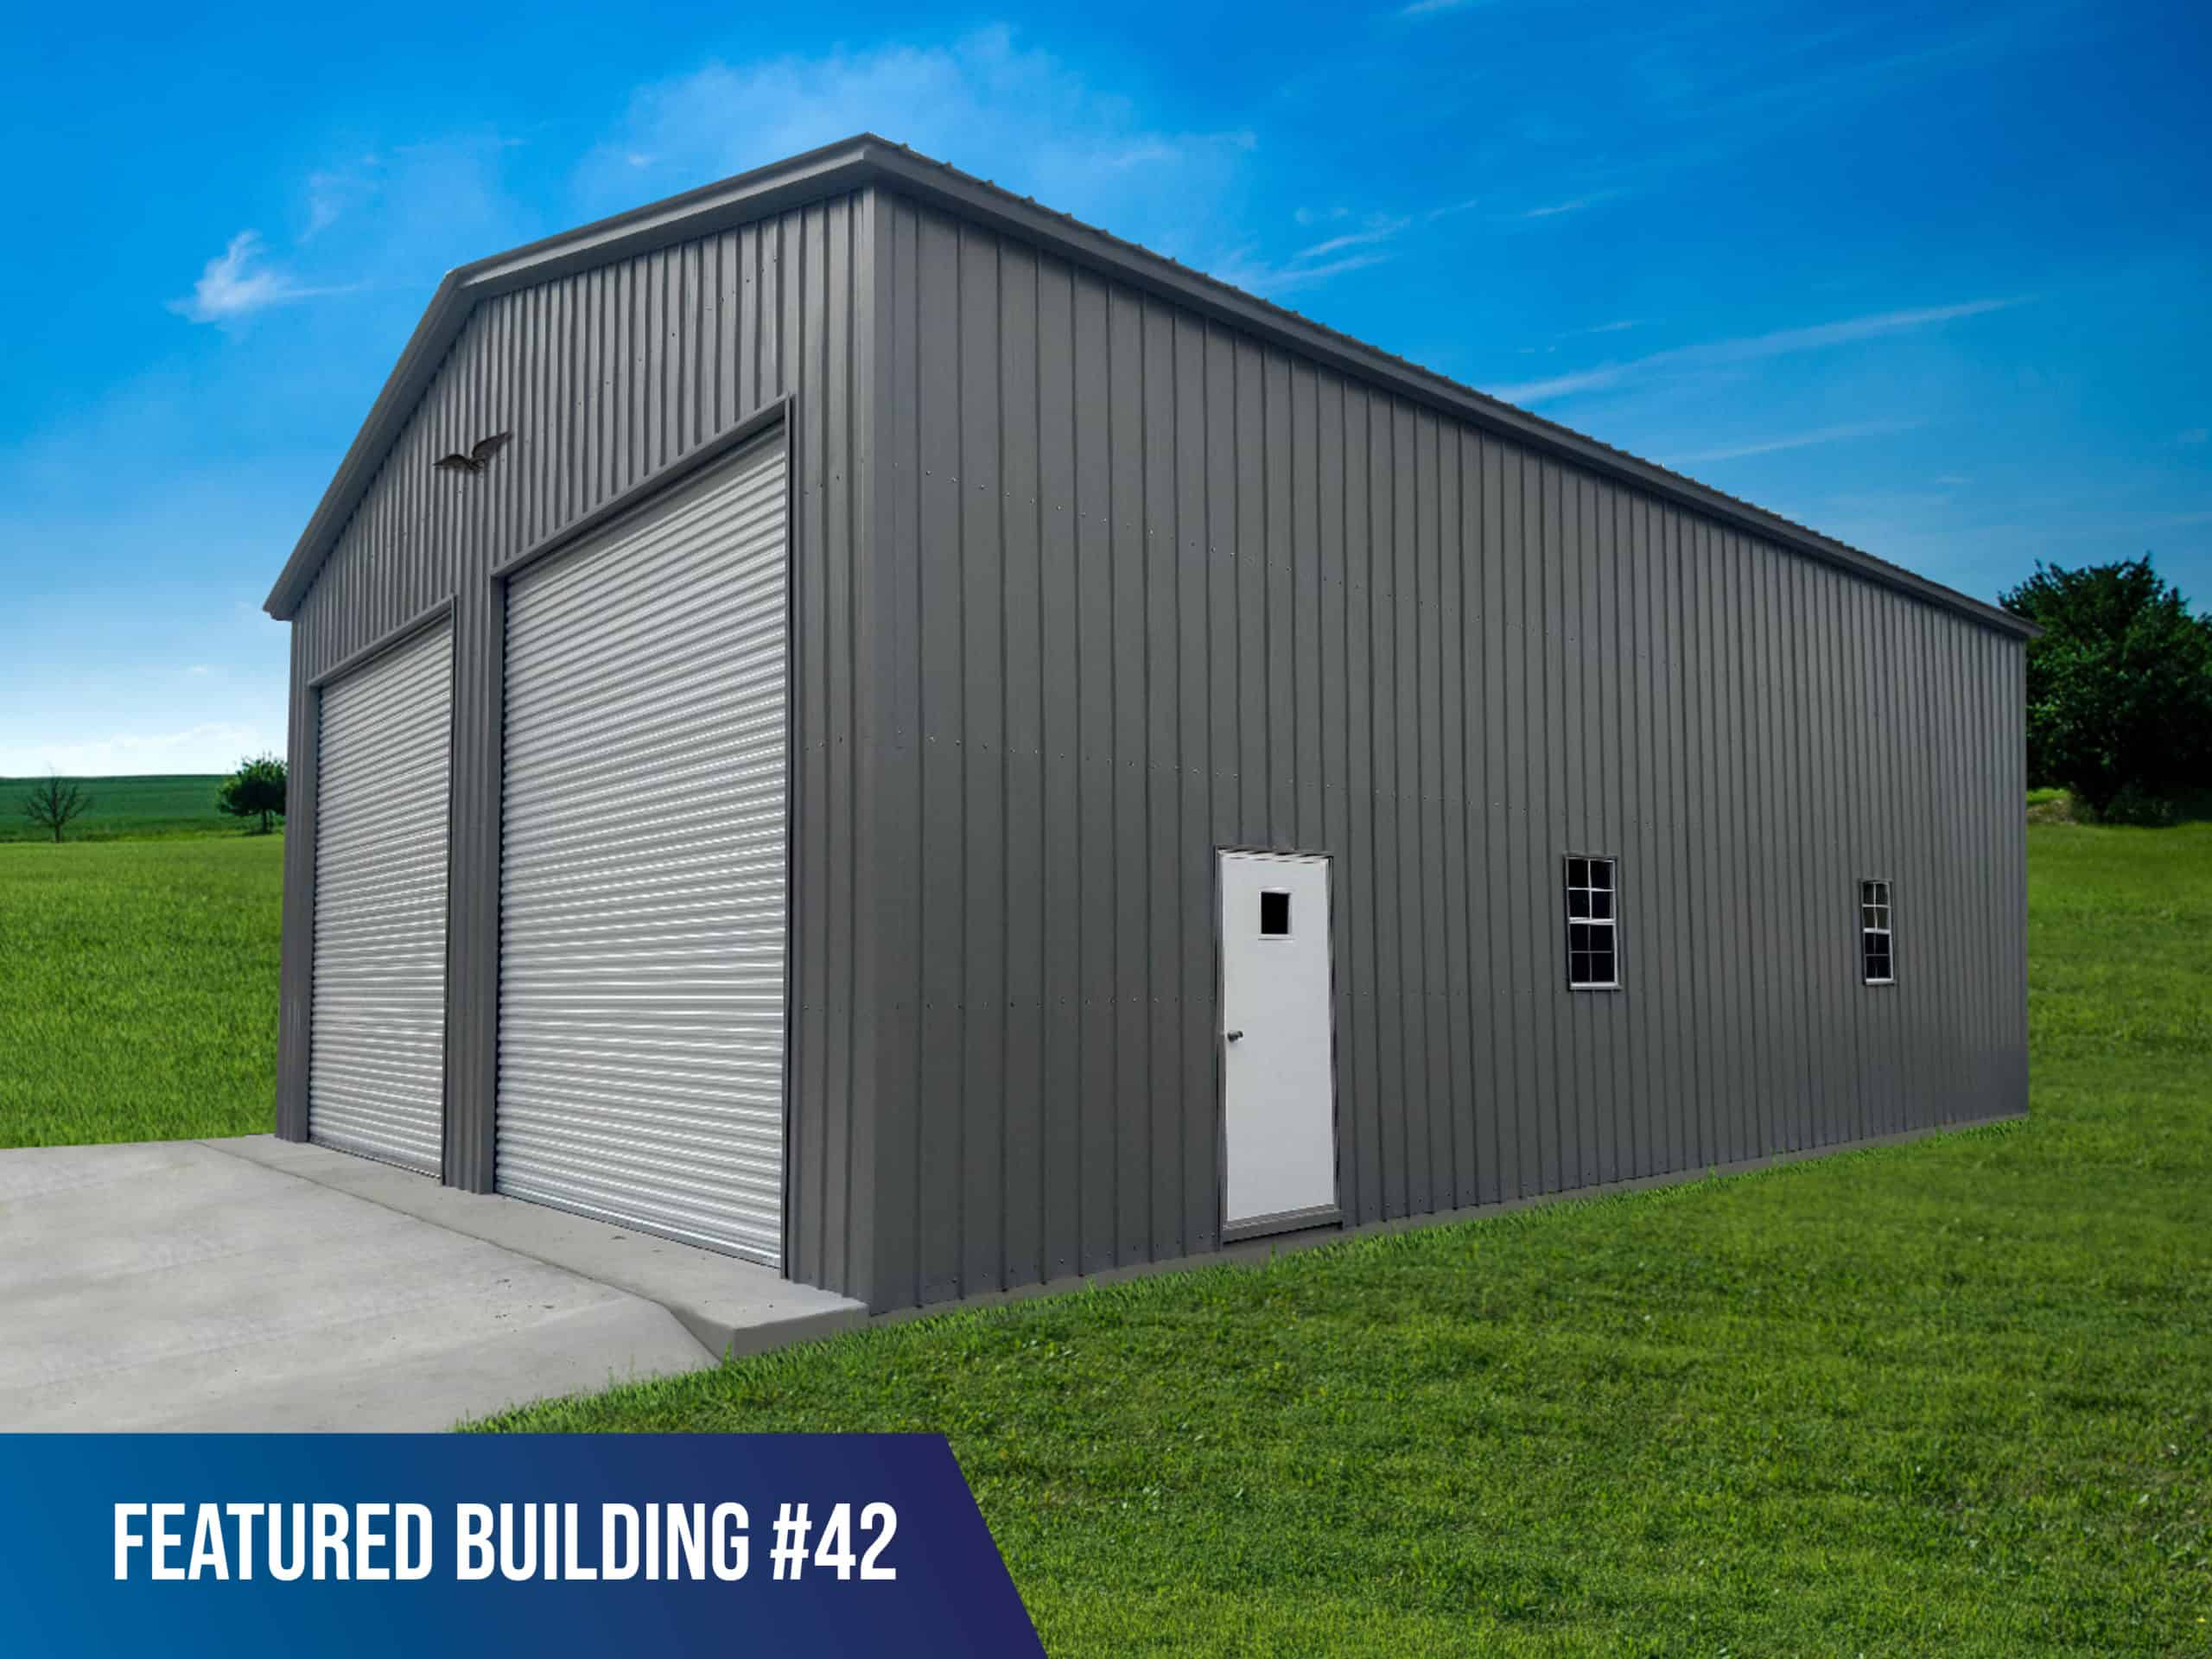 36x45x16 Vertical Roof Metal Commercial Building